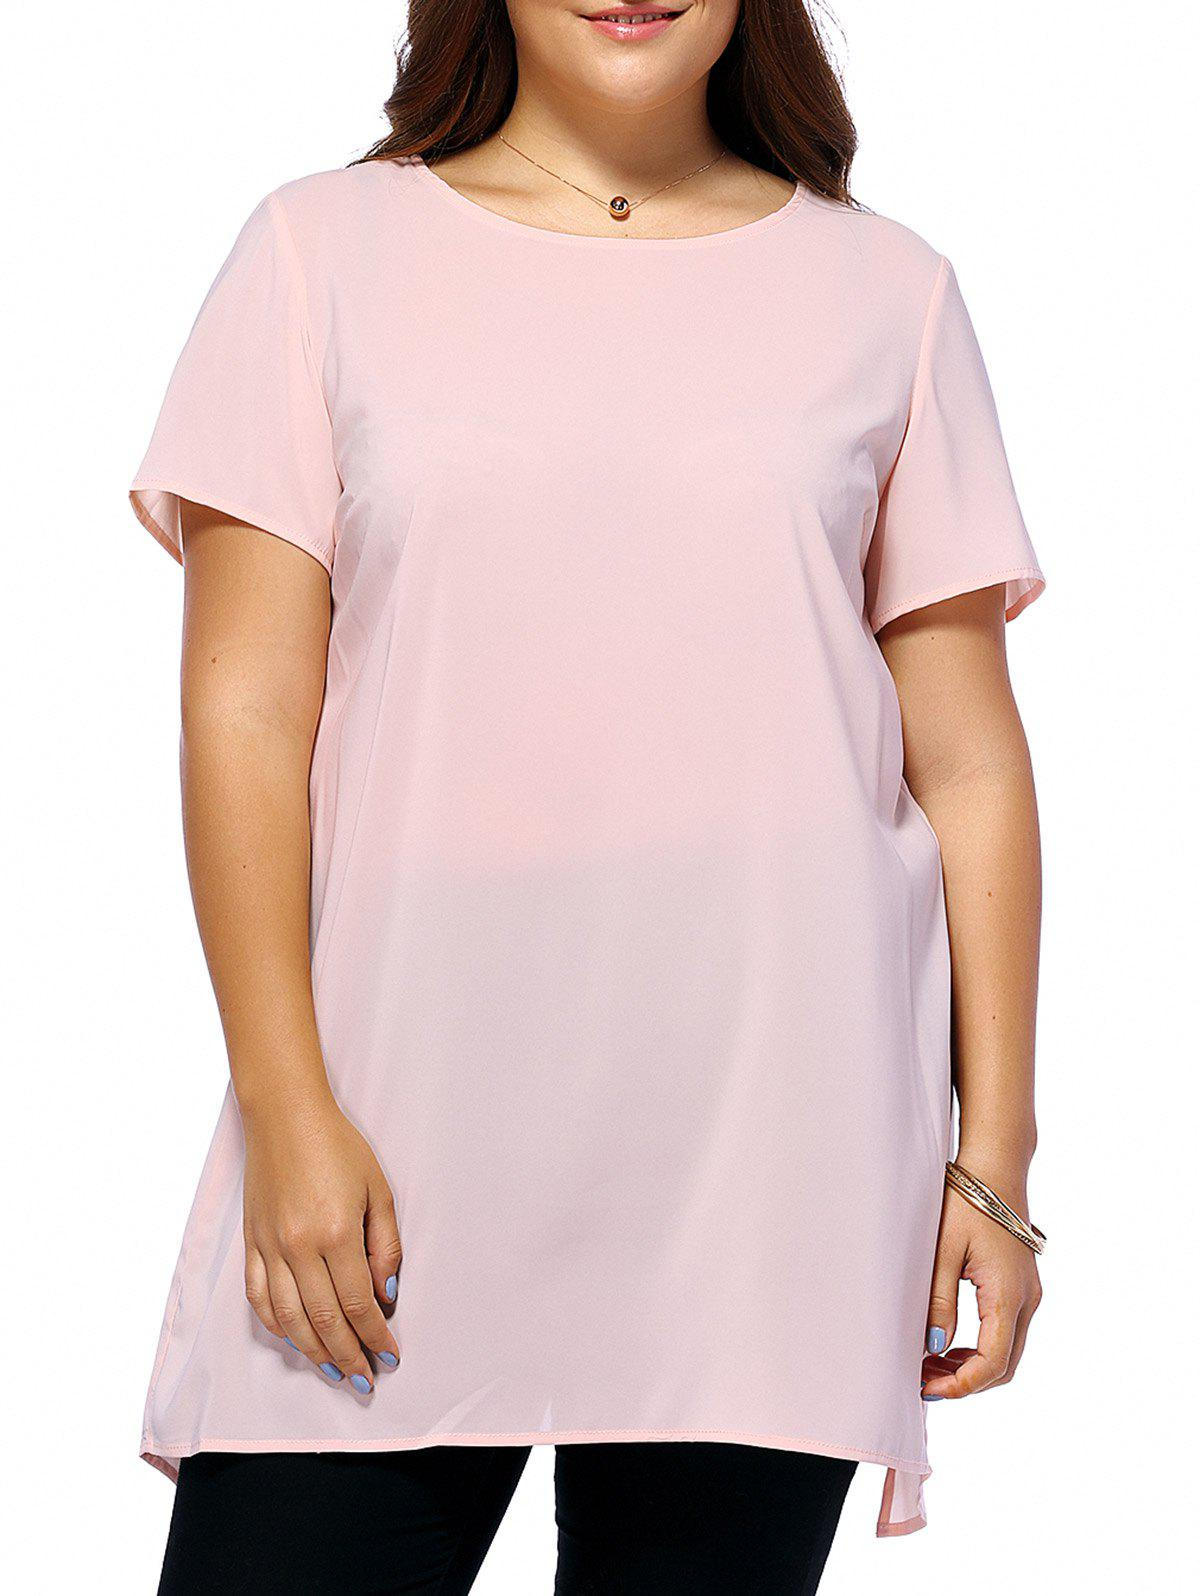 Stylish Plus Size Back Slit Pure Color Women's Blouse - SHALLOW PINK 3XL